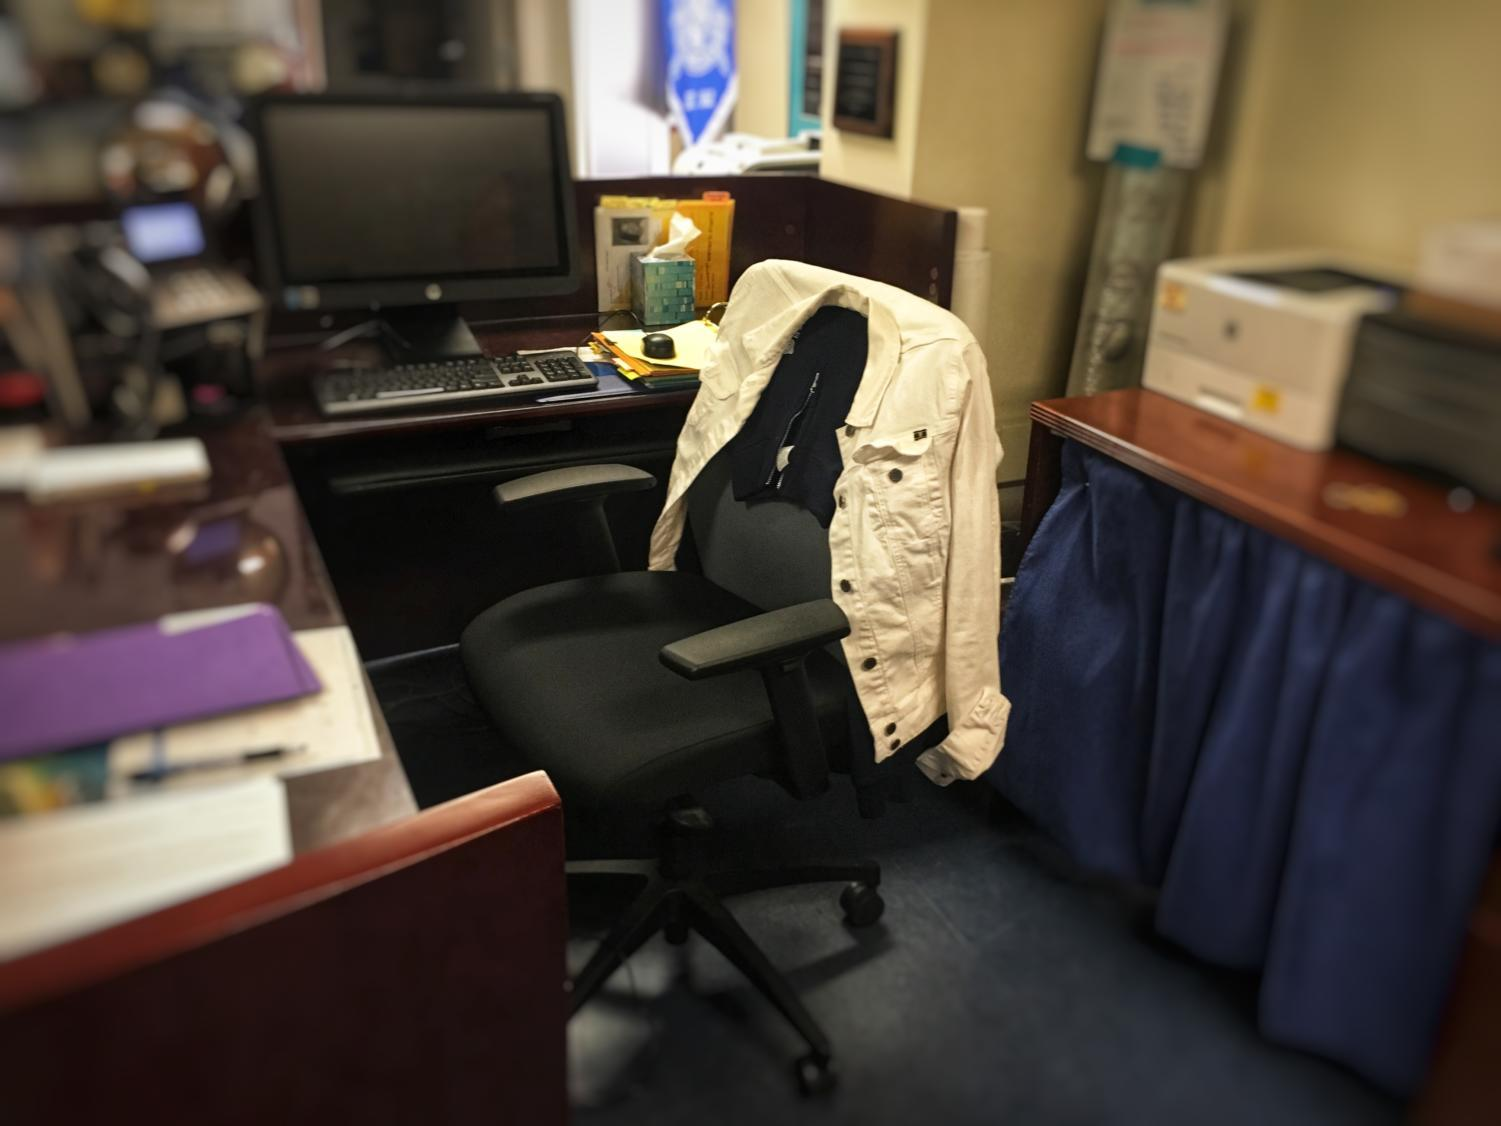 The chair of Ralph Crame's secretary remains empty until a permanent replacement is found.